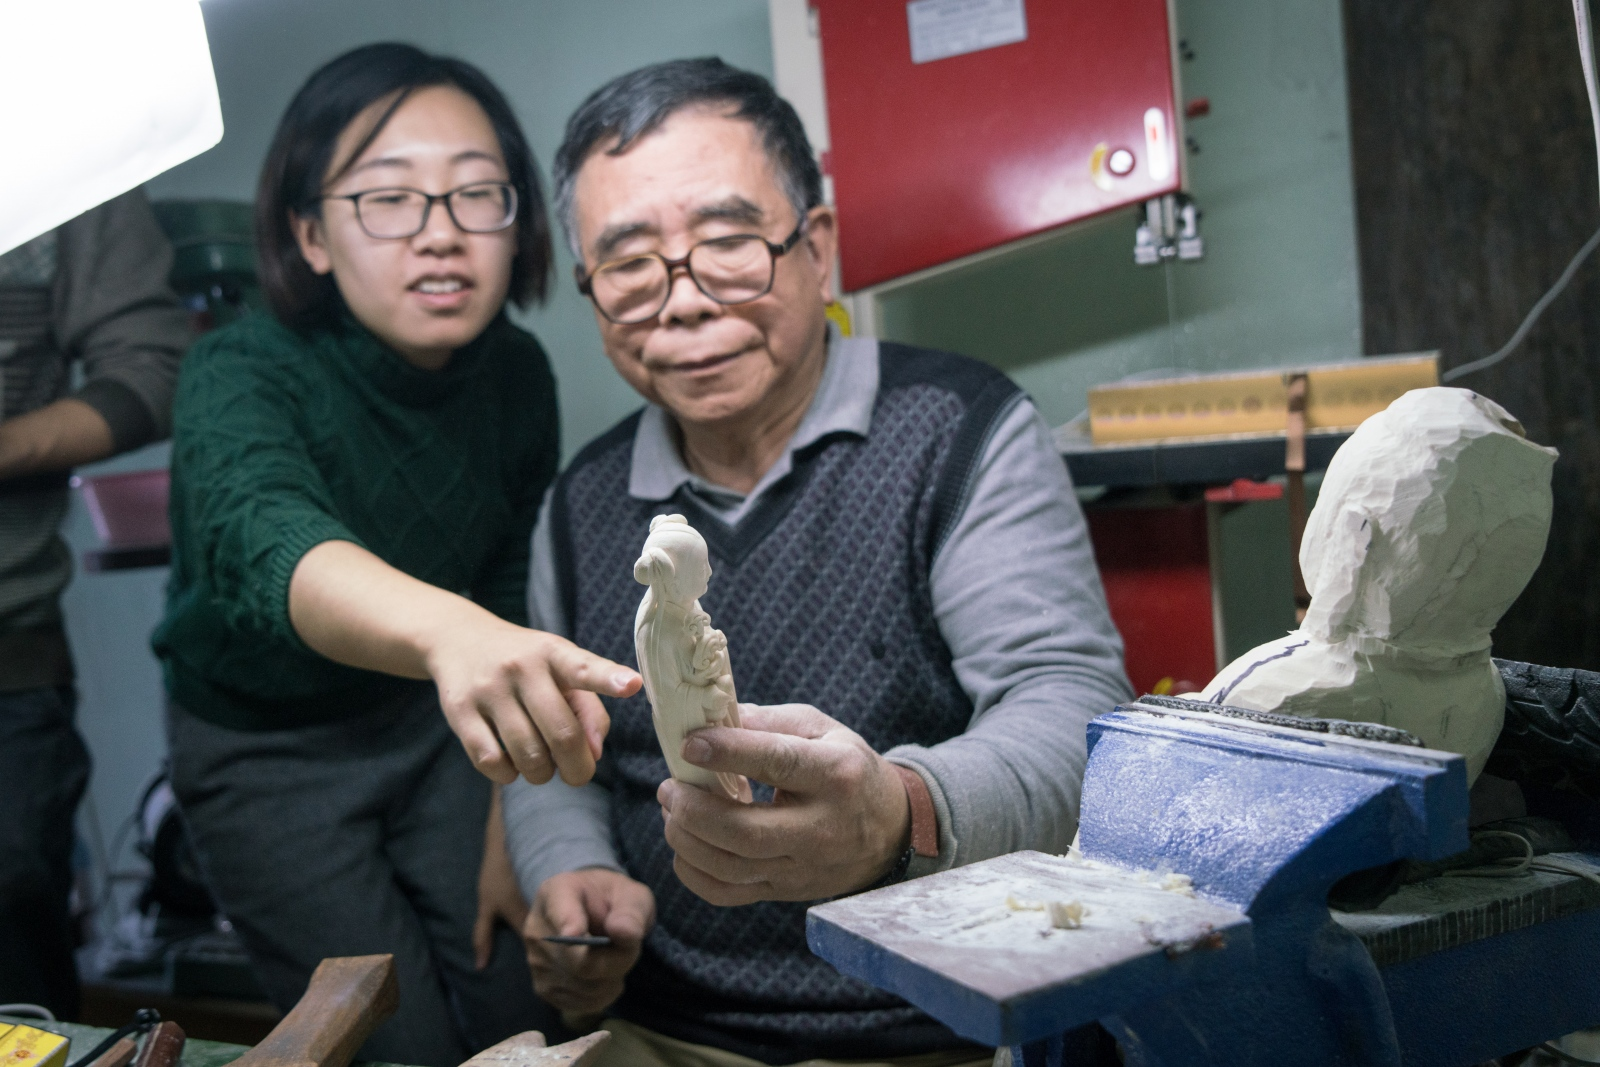 Ivory carving artist Li Chunke comments on the unfinished ivory statue made by Pan Xingjie, a former student who now works at Li's workshop, and offers advice at his ivory workshop in Beijing, China on December 10, 2017.